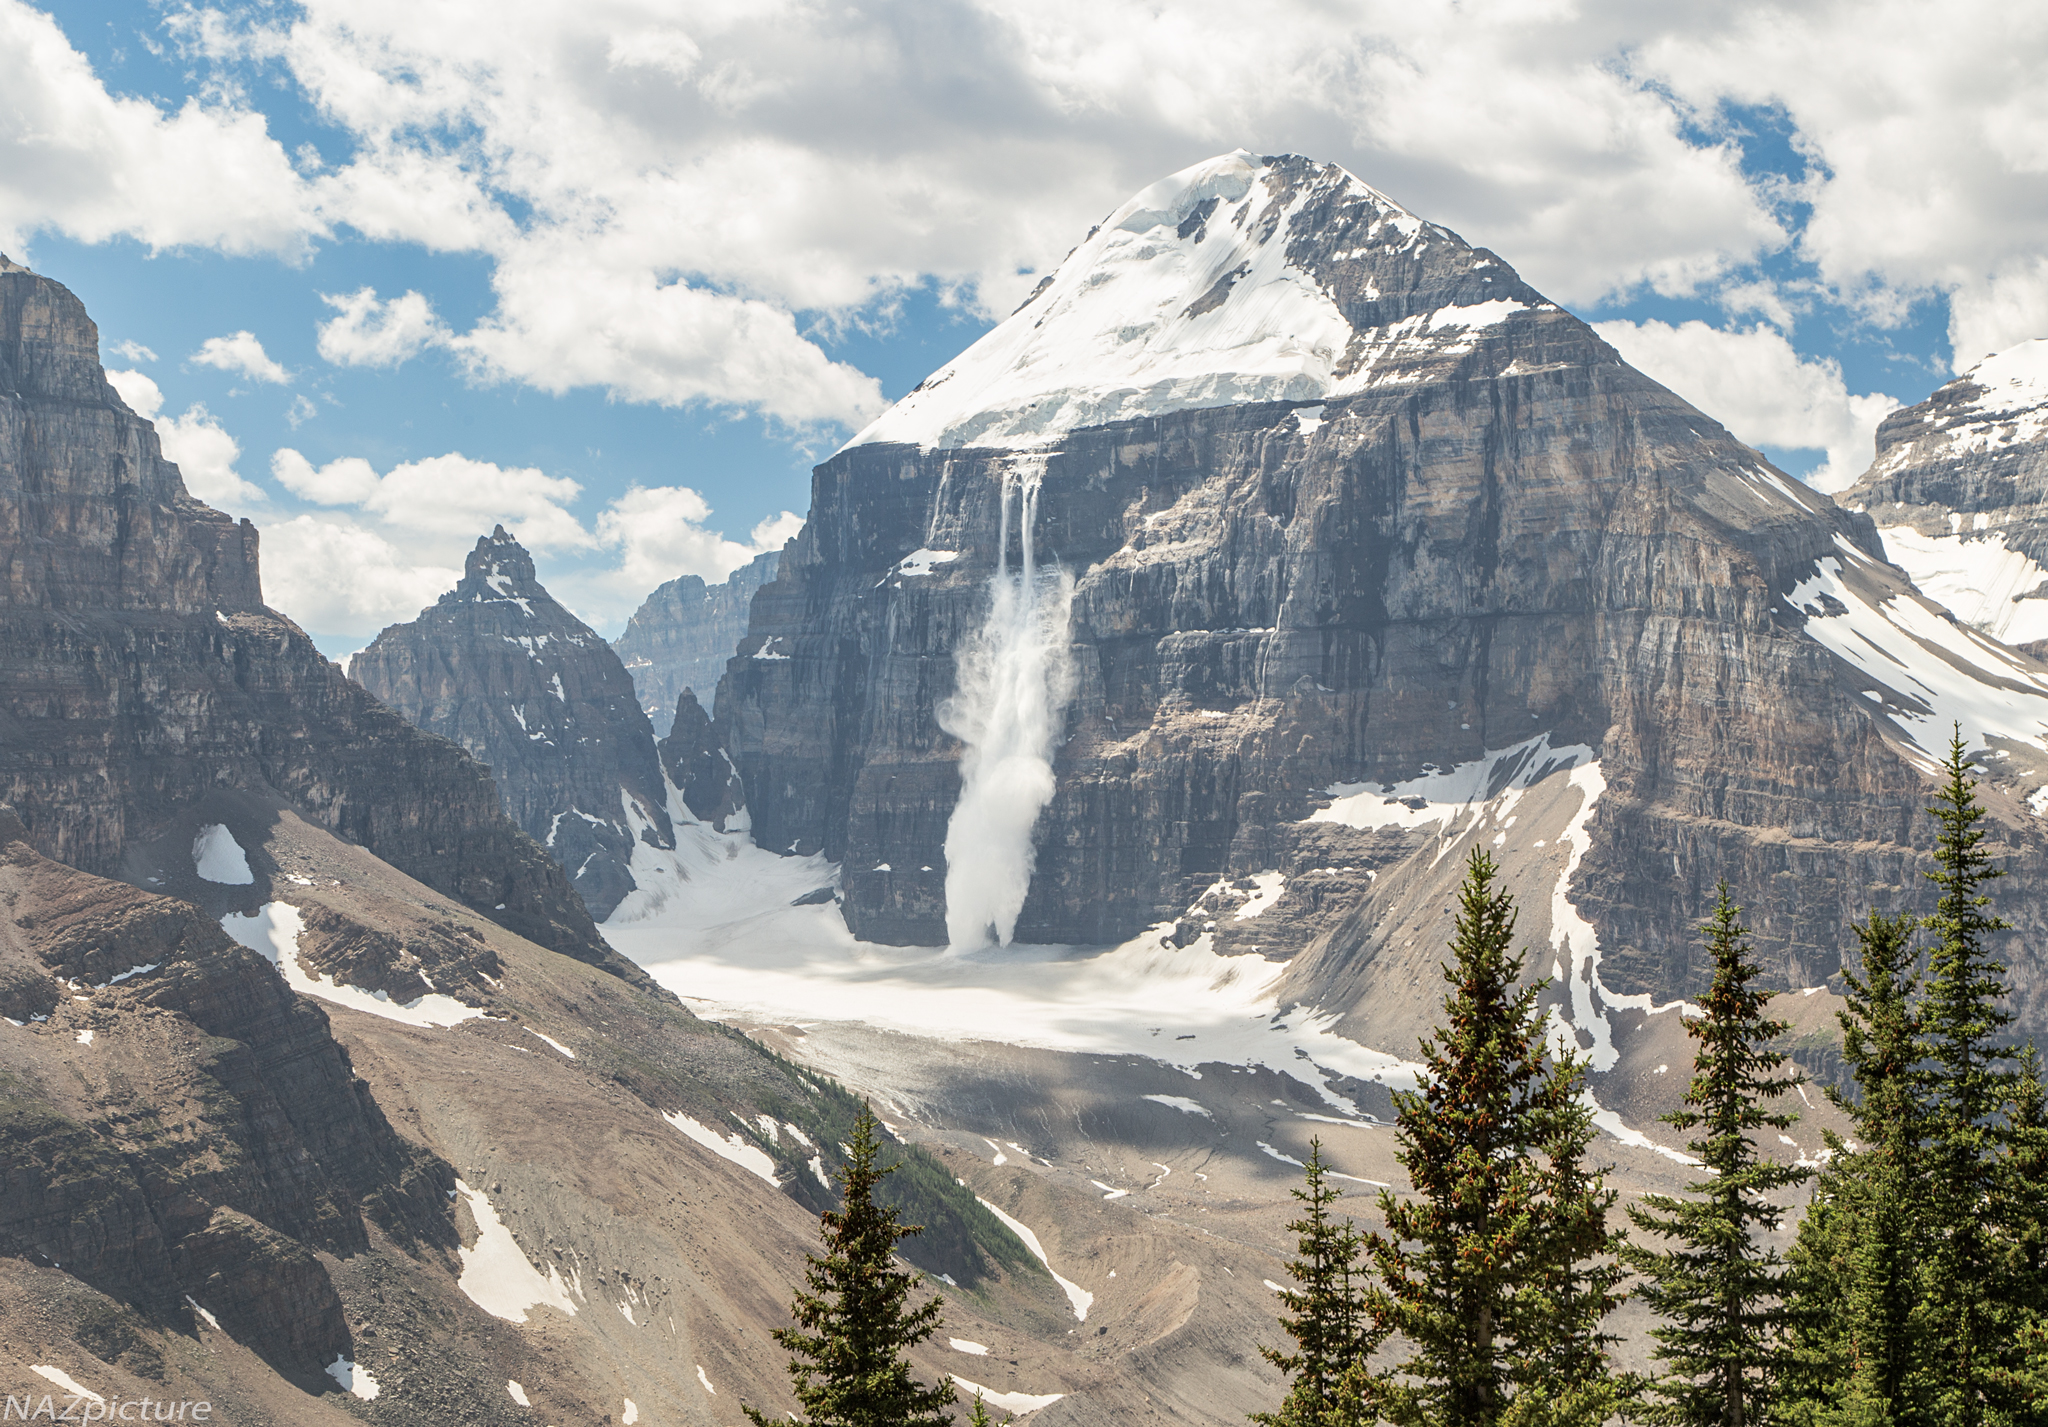 An avalanche cascades off the face of Mt. Lefroy. [Banff National Park, Alberta]